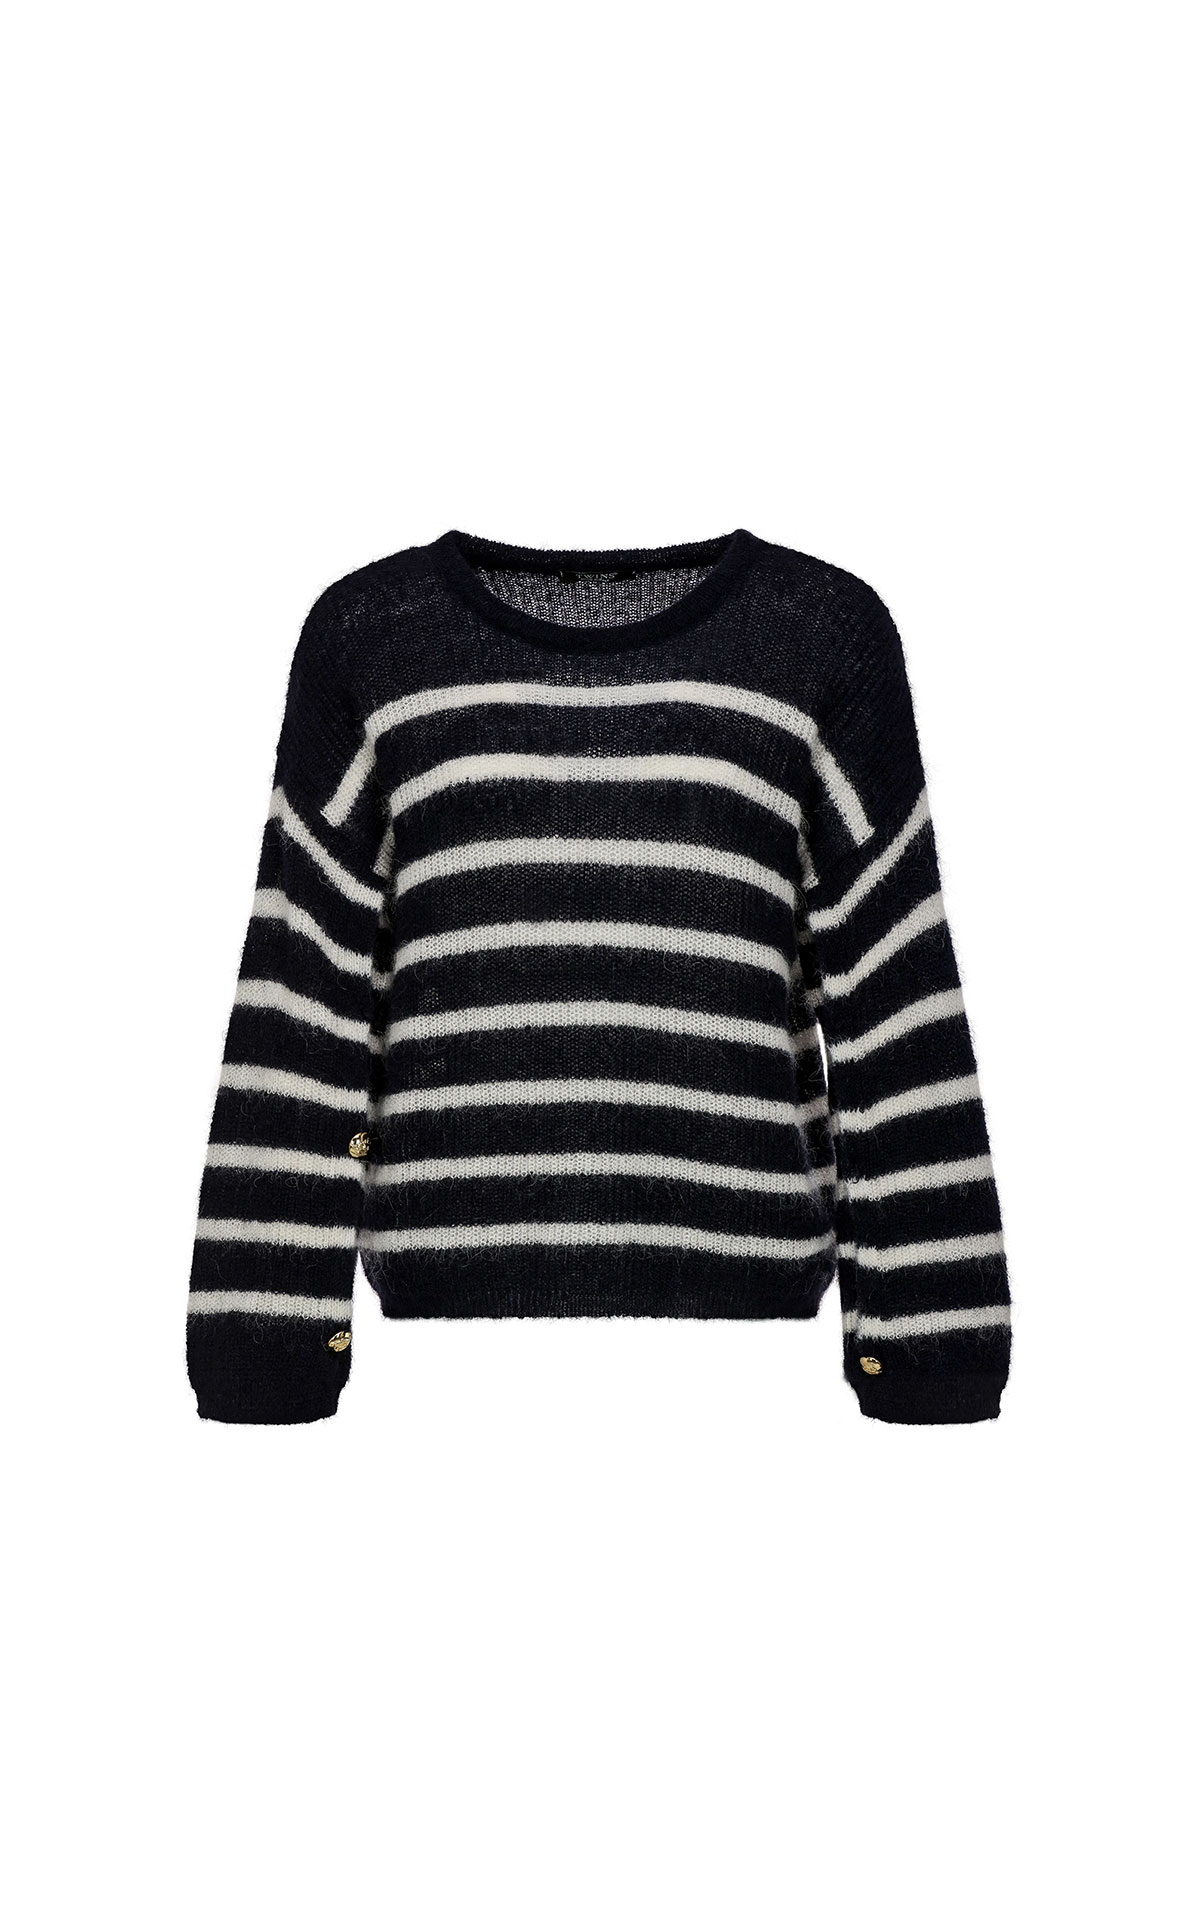 Claudie Pierlot's Mayah Sweater at The Bicester Village Shopping Collection